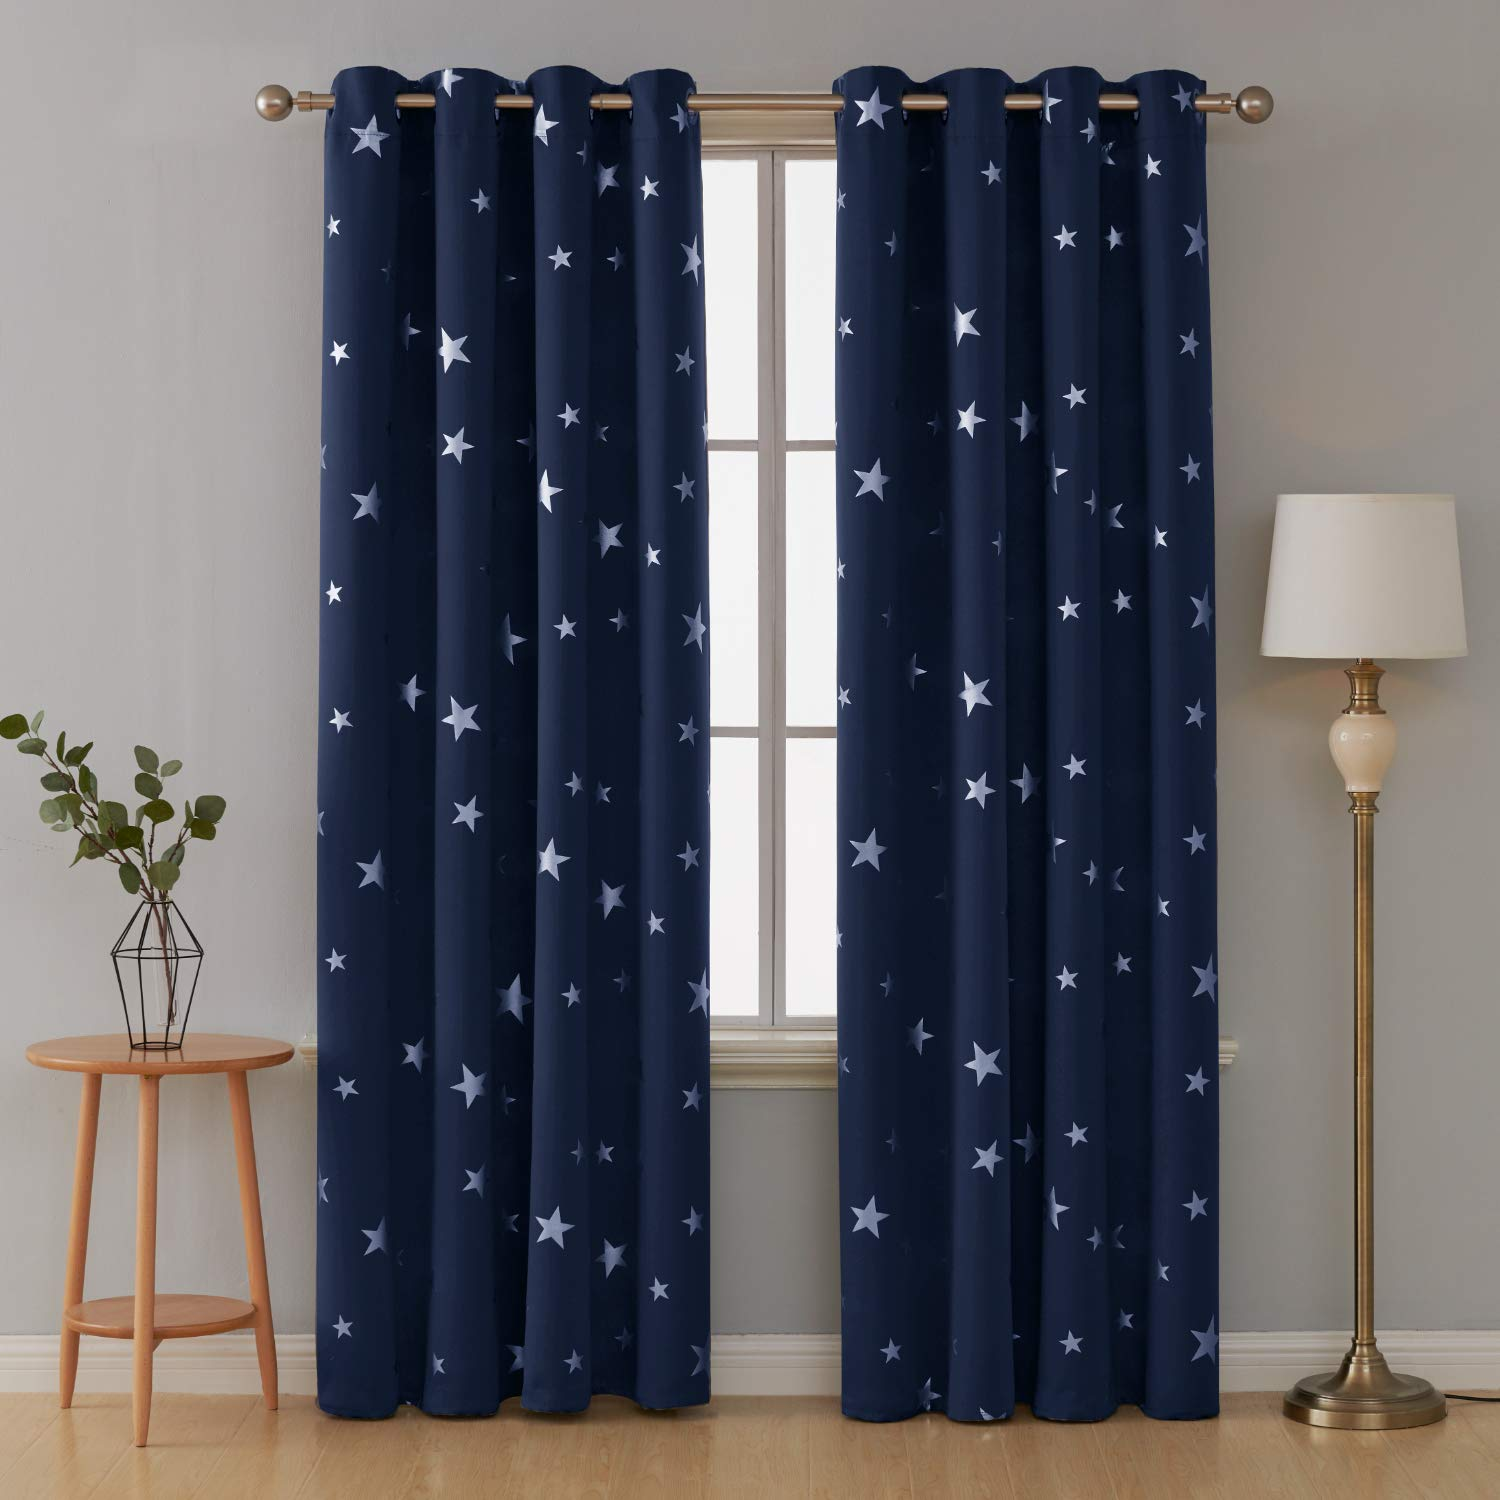 Deconovo Solid Grommet Curtains Window Blackout Curtains Silver Star Print Blackout Drapes for Infant Room 42x63 Inch Dark Grey 2 Panels